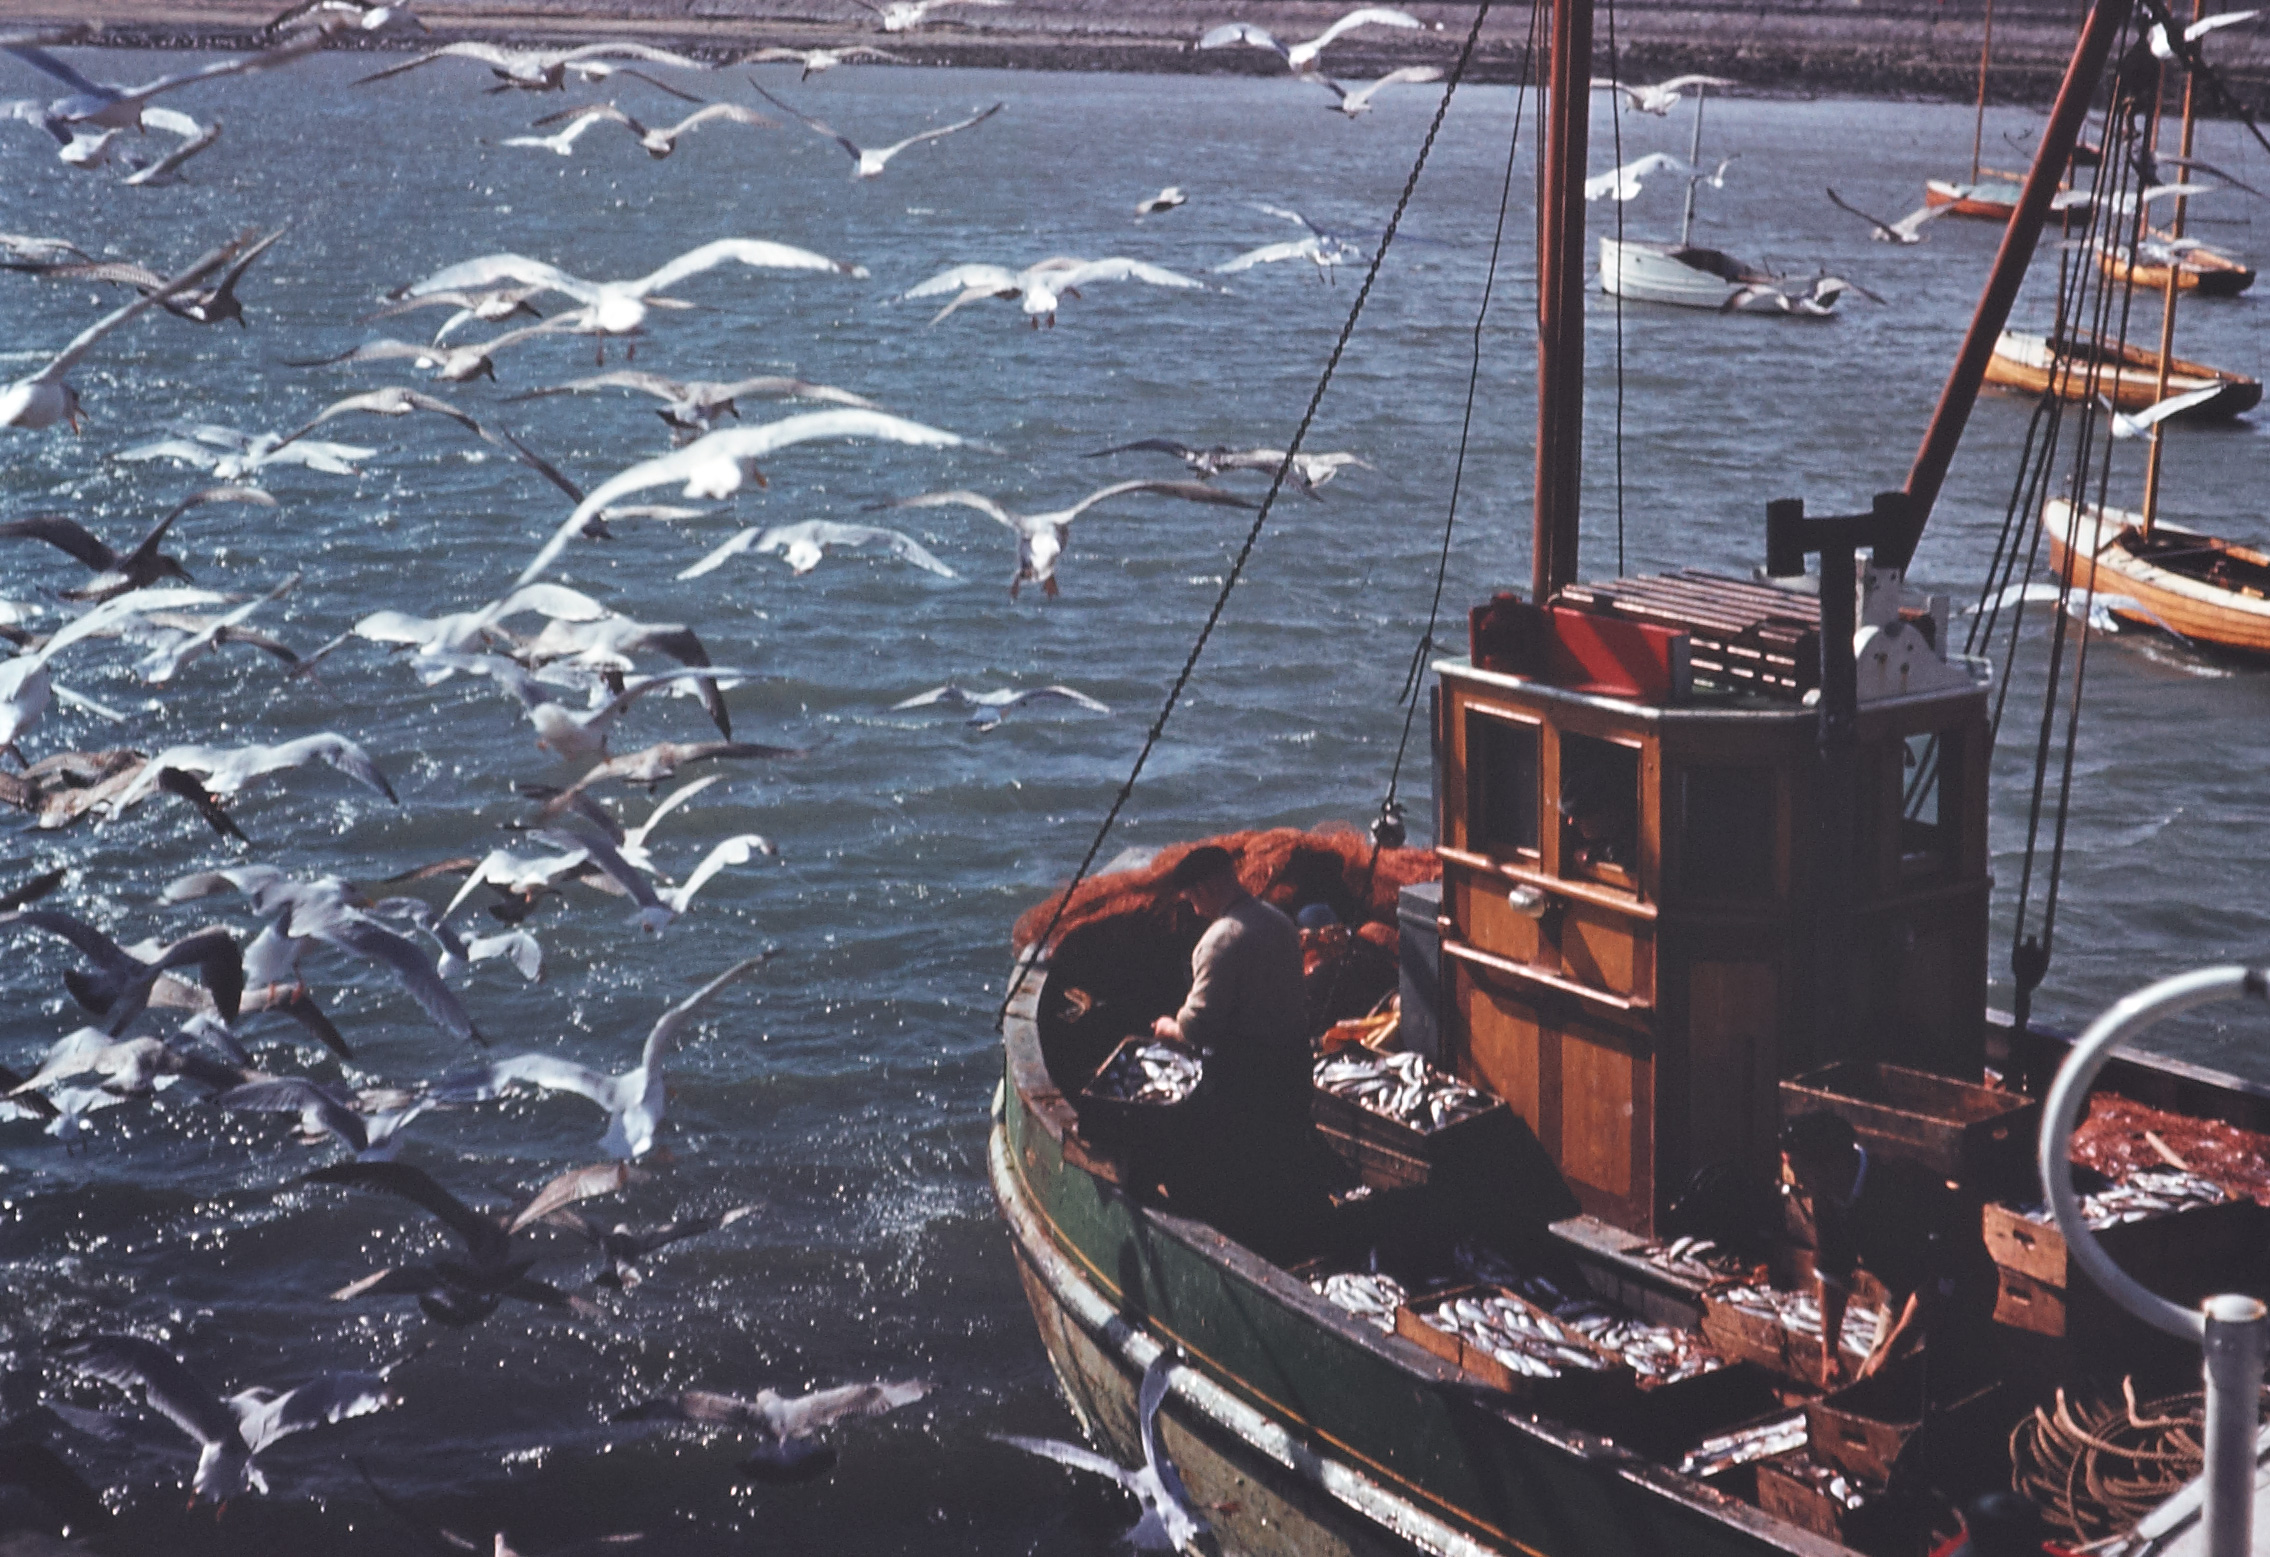 Ireland 1960s, A fishing trawler returning to Skerries, Co. Dublin with a full catch. Local seagulls are having a ball with unwanted fish bits thrown back in by one the fishermen. Date: Circa 1960